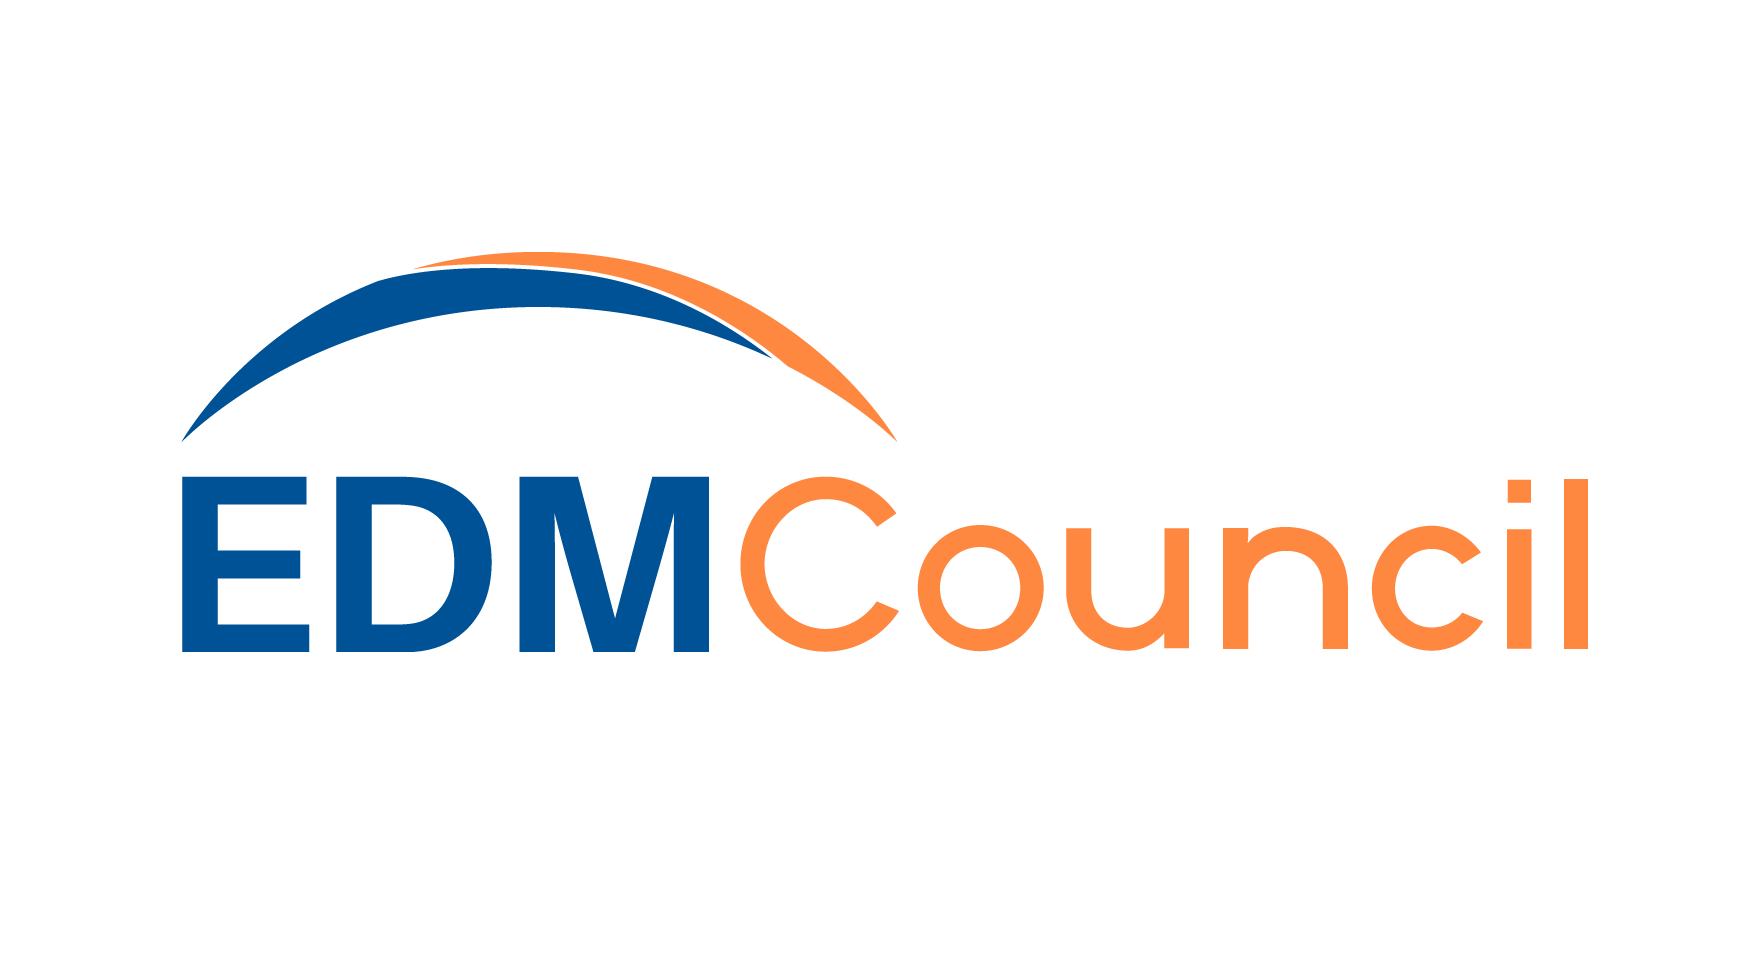 EDM Council Launches Cloud Data Management Capabilities Framework to Ensure Trusted Best Practices for Accelerating Cloud